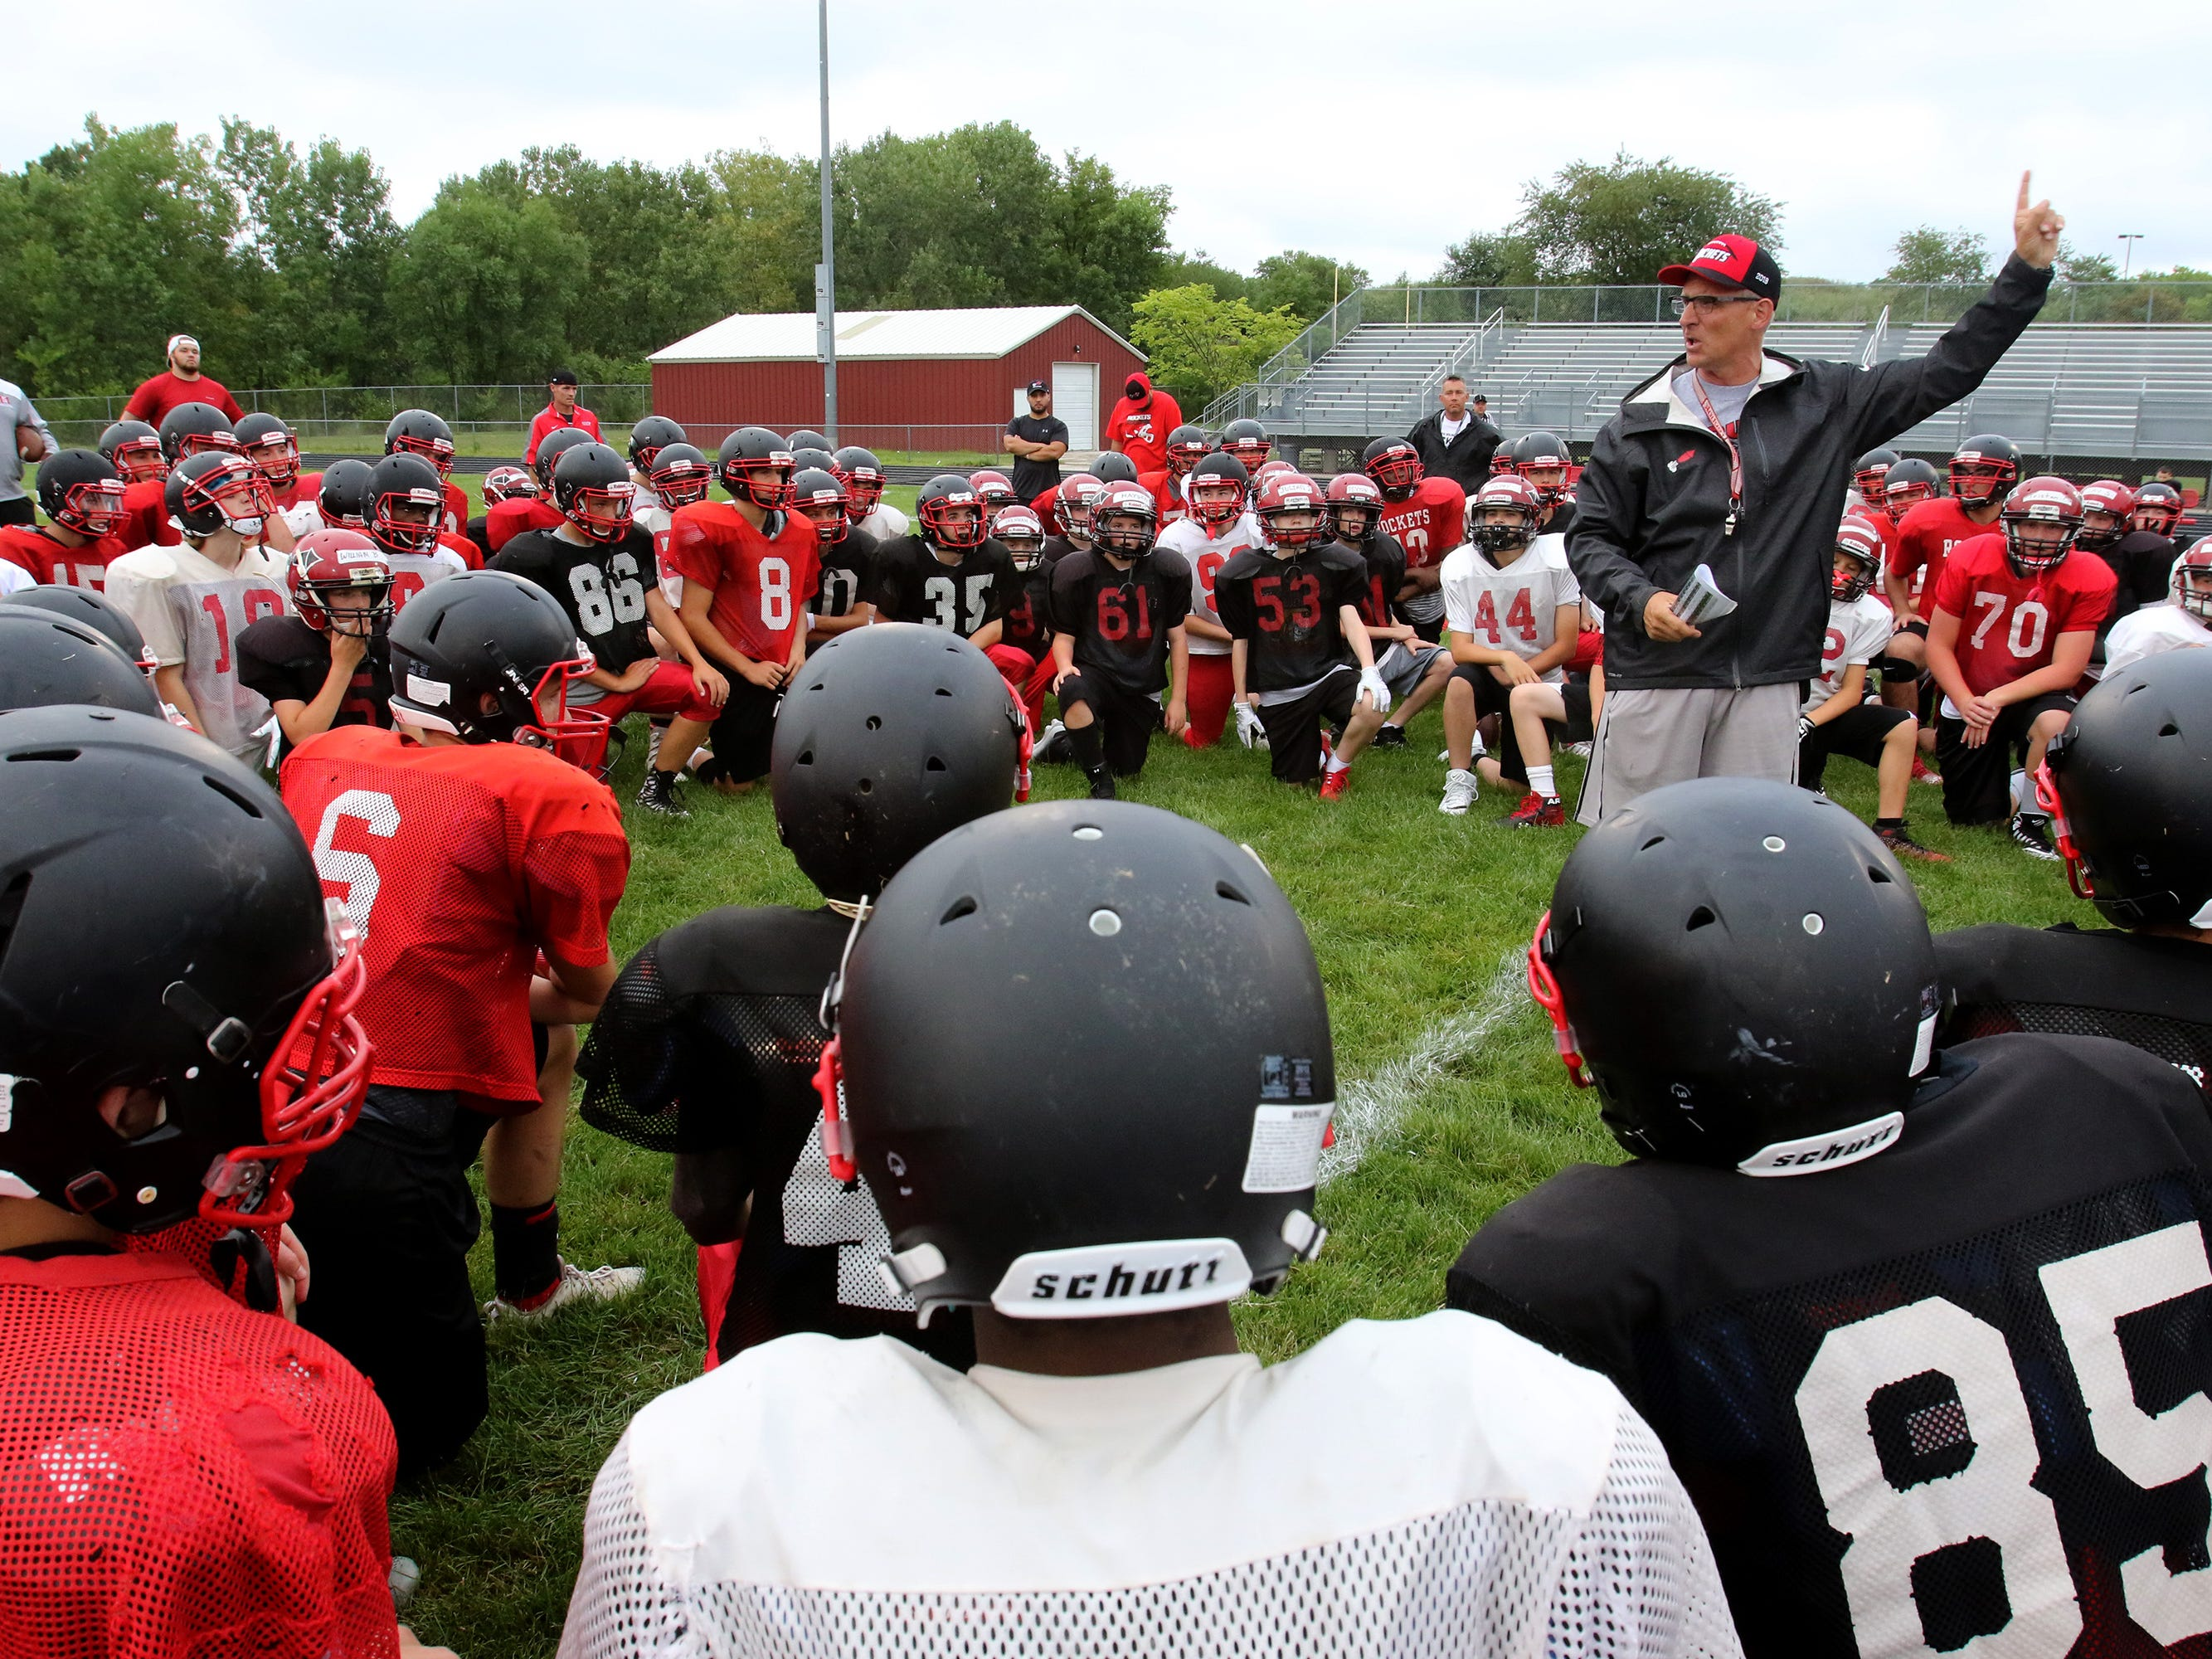 Defensive Coordinator Mark Hoffman directs sixth grade through varisty players on the next round of drills during South Milwaukee's Practice Night on Aug. 7 at South Milwaukee High School.